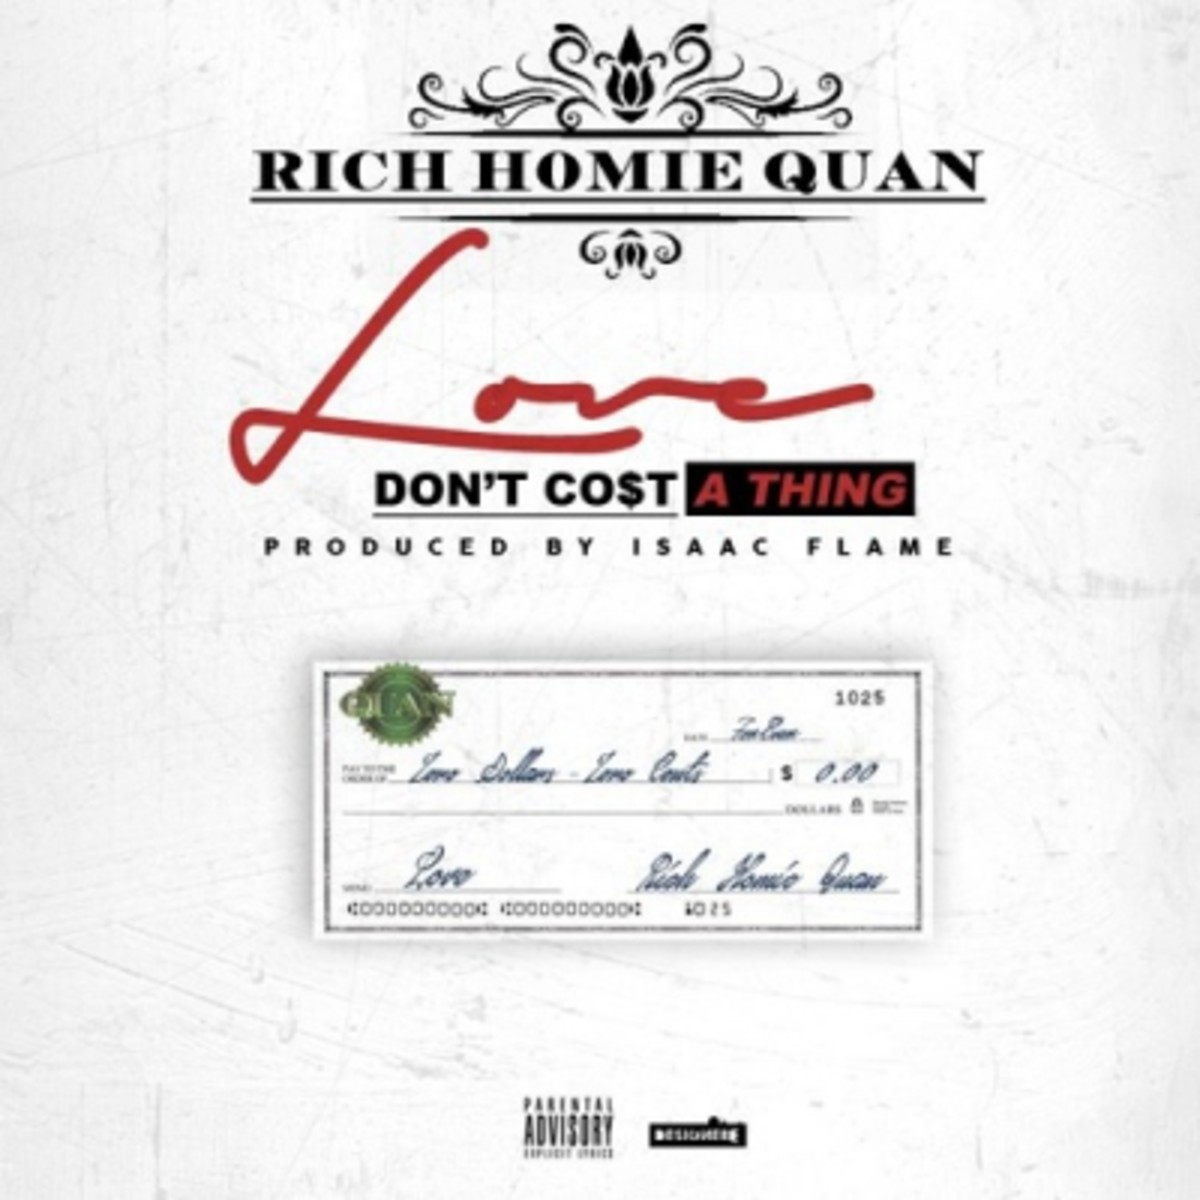 rich-homie-quan-love-dont-cost-a-thing.jpg